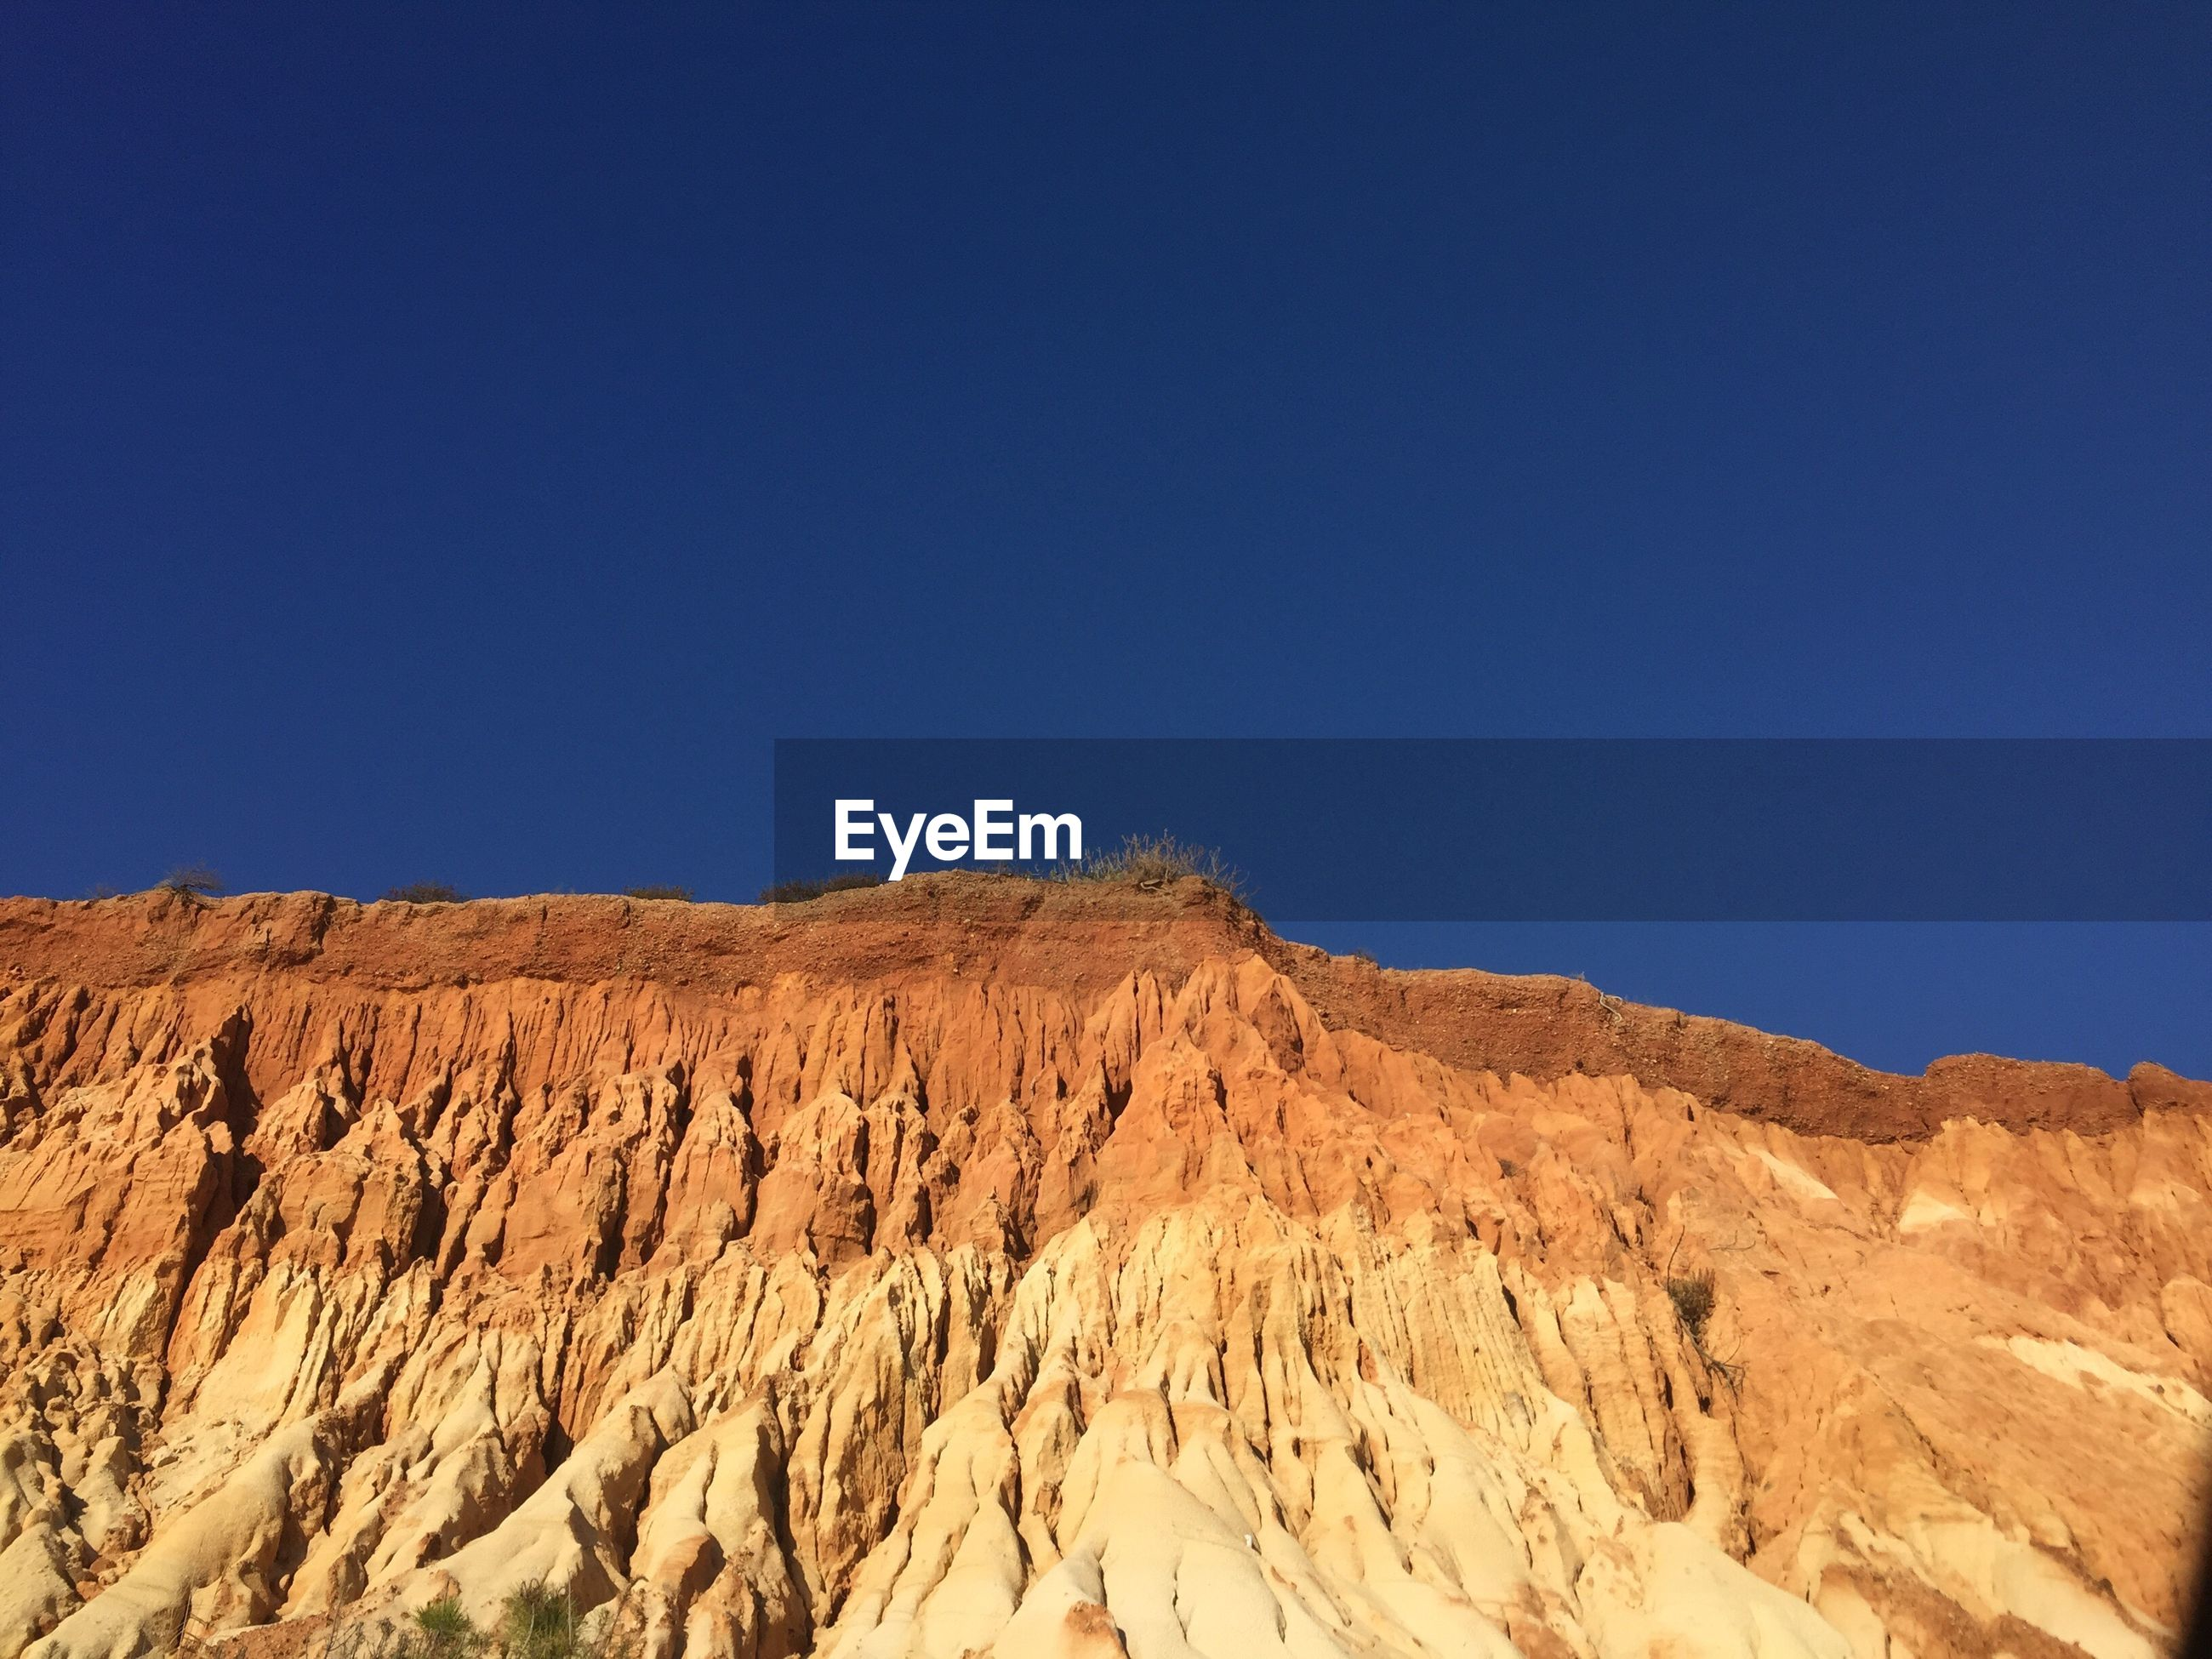 LOW ANGLE VIEW OF BARREN LANDSCAPE AGAINST CLEAR BLUE SKY